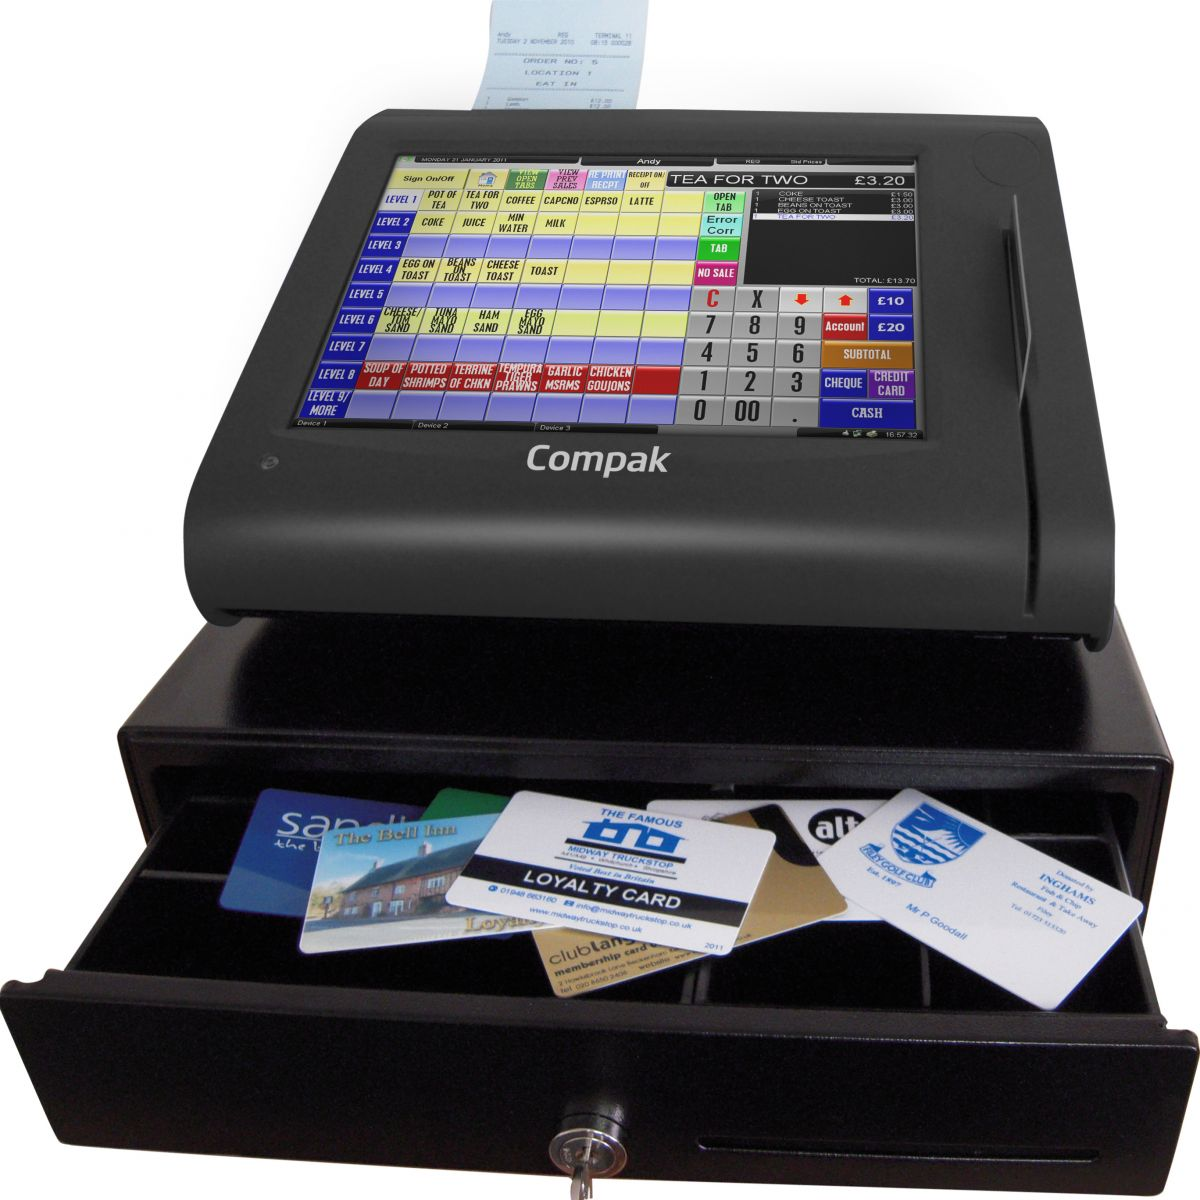 epos and eftpos This article will give you an overview of the pros and cons of using an epos system in your business, rather than just a traditional cash till.